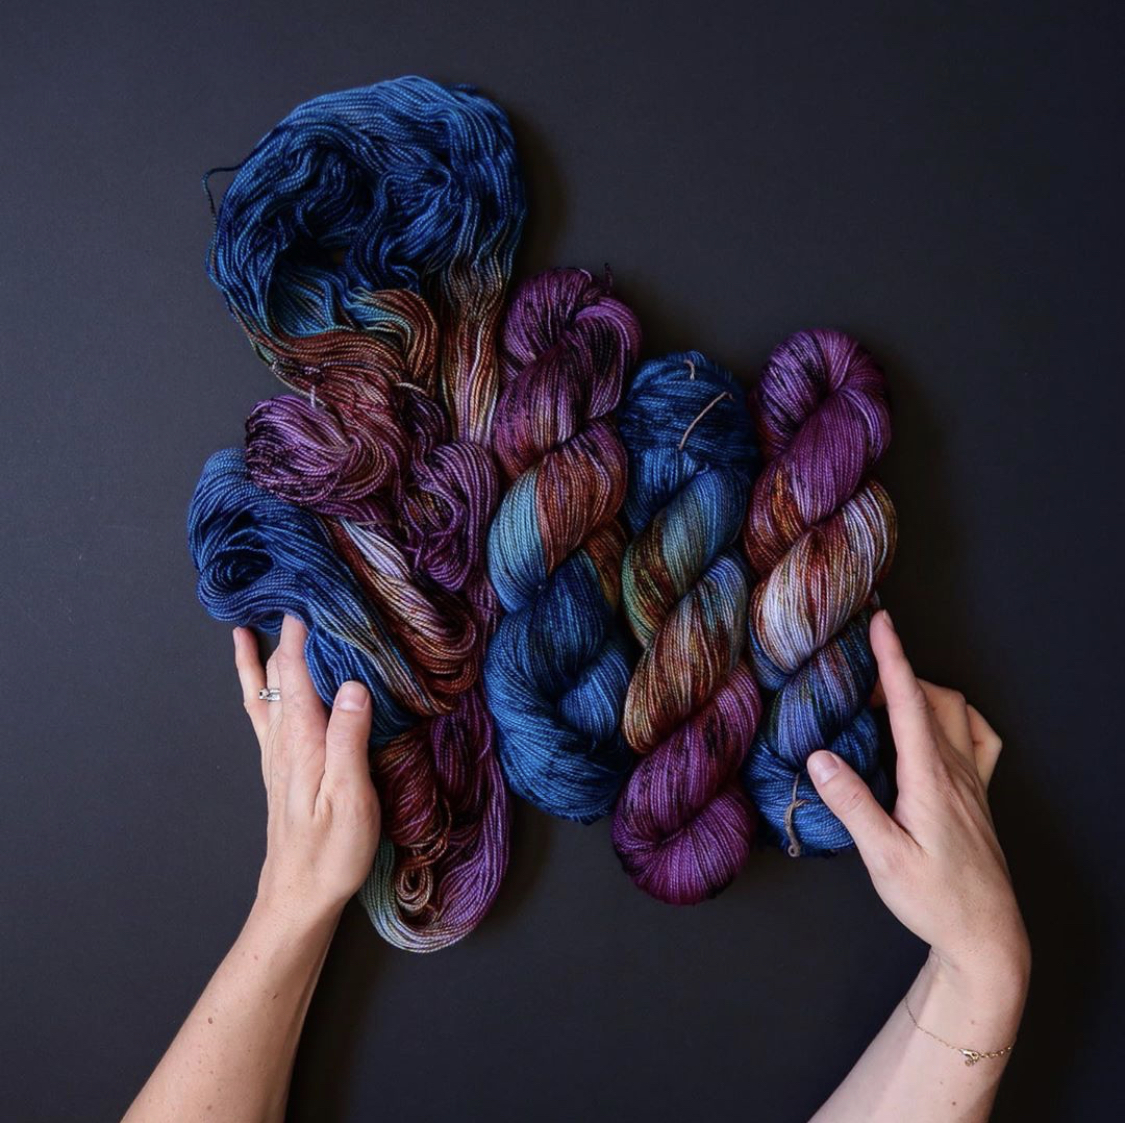 Tayler's hands embrace four hanks of blue & purple yarn, one hank unskeined and flowing; Photo by Tayler Earl of Fiber for the People®